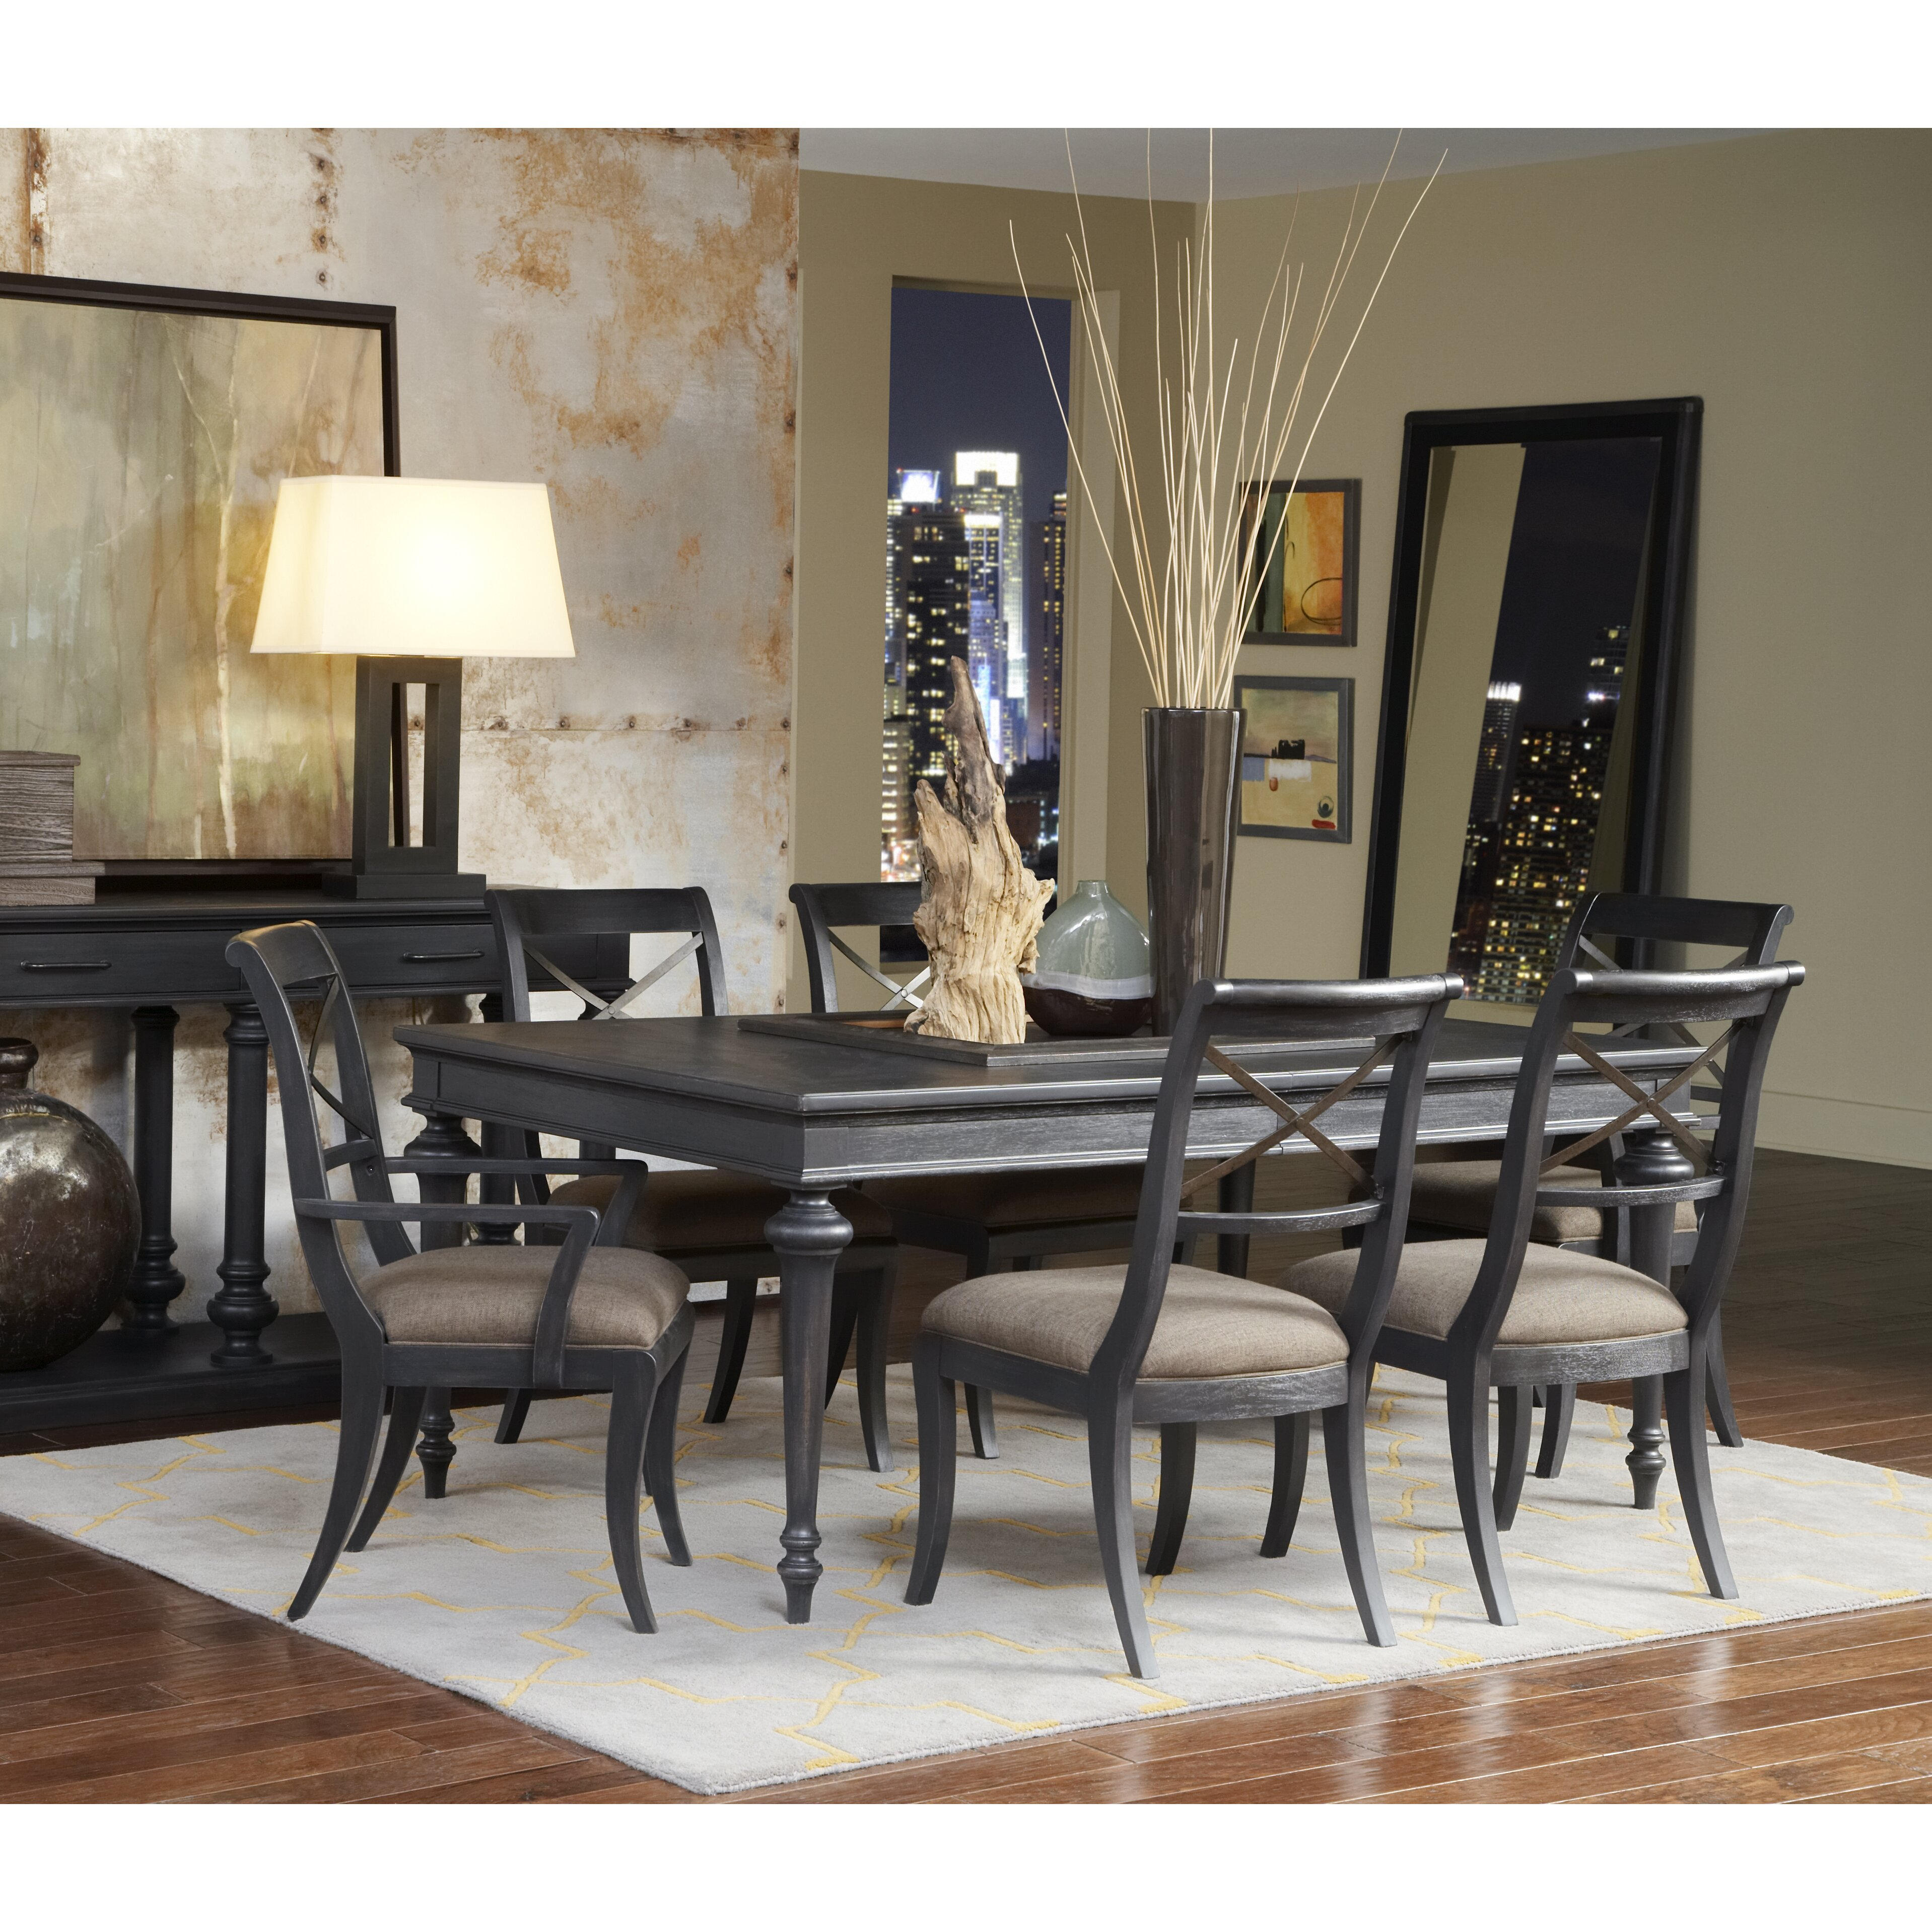 Trent Austin Design Lonerock Dining Table